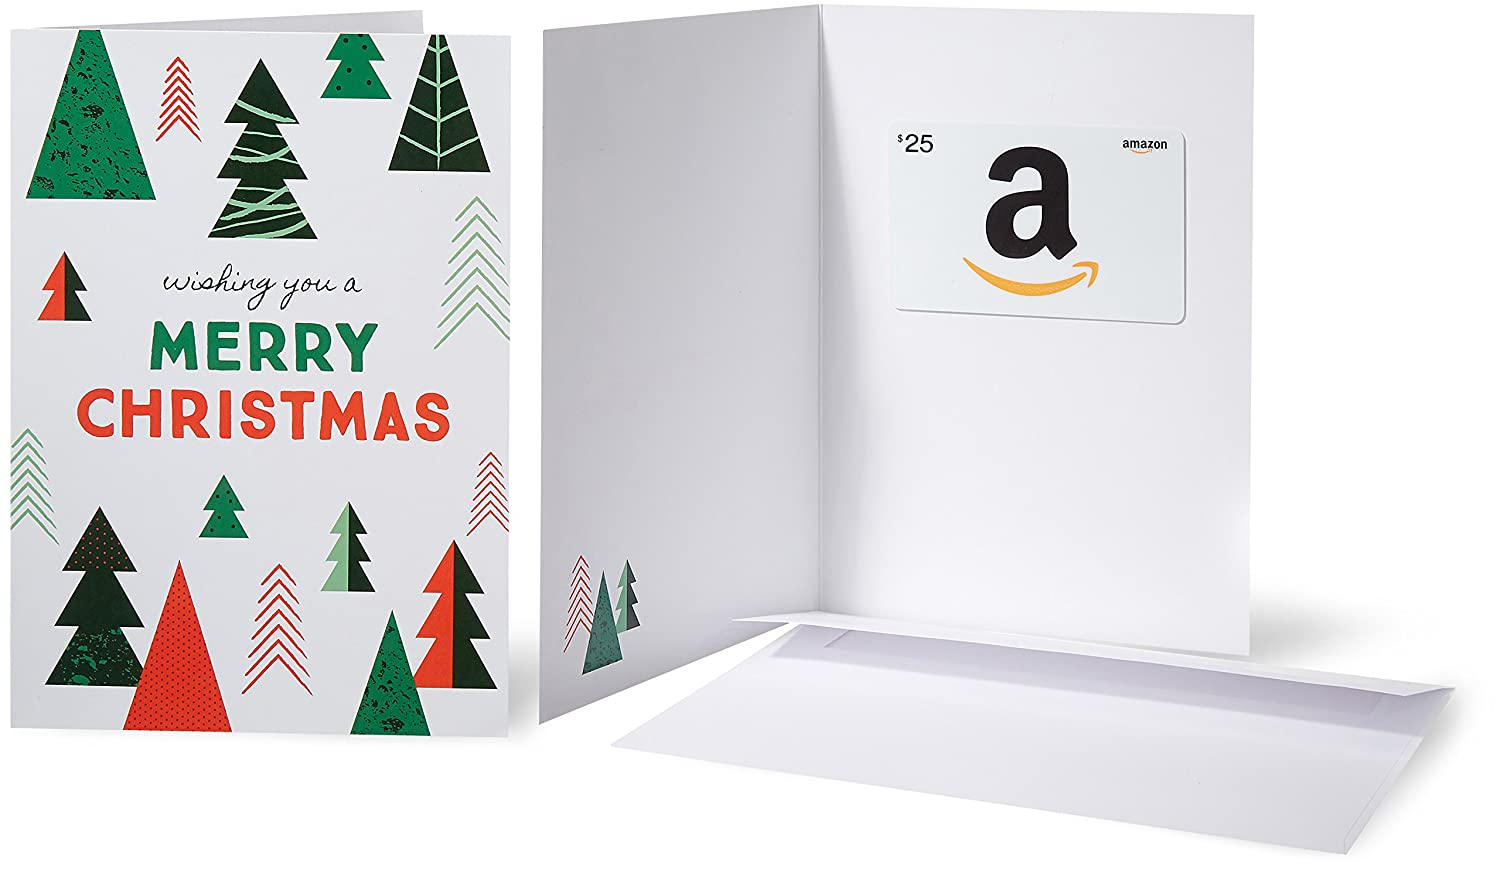 Amazon.ca $25 Gift Card in a Greeting Card (Christmas Tree)